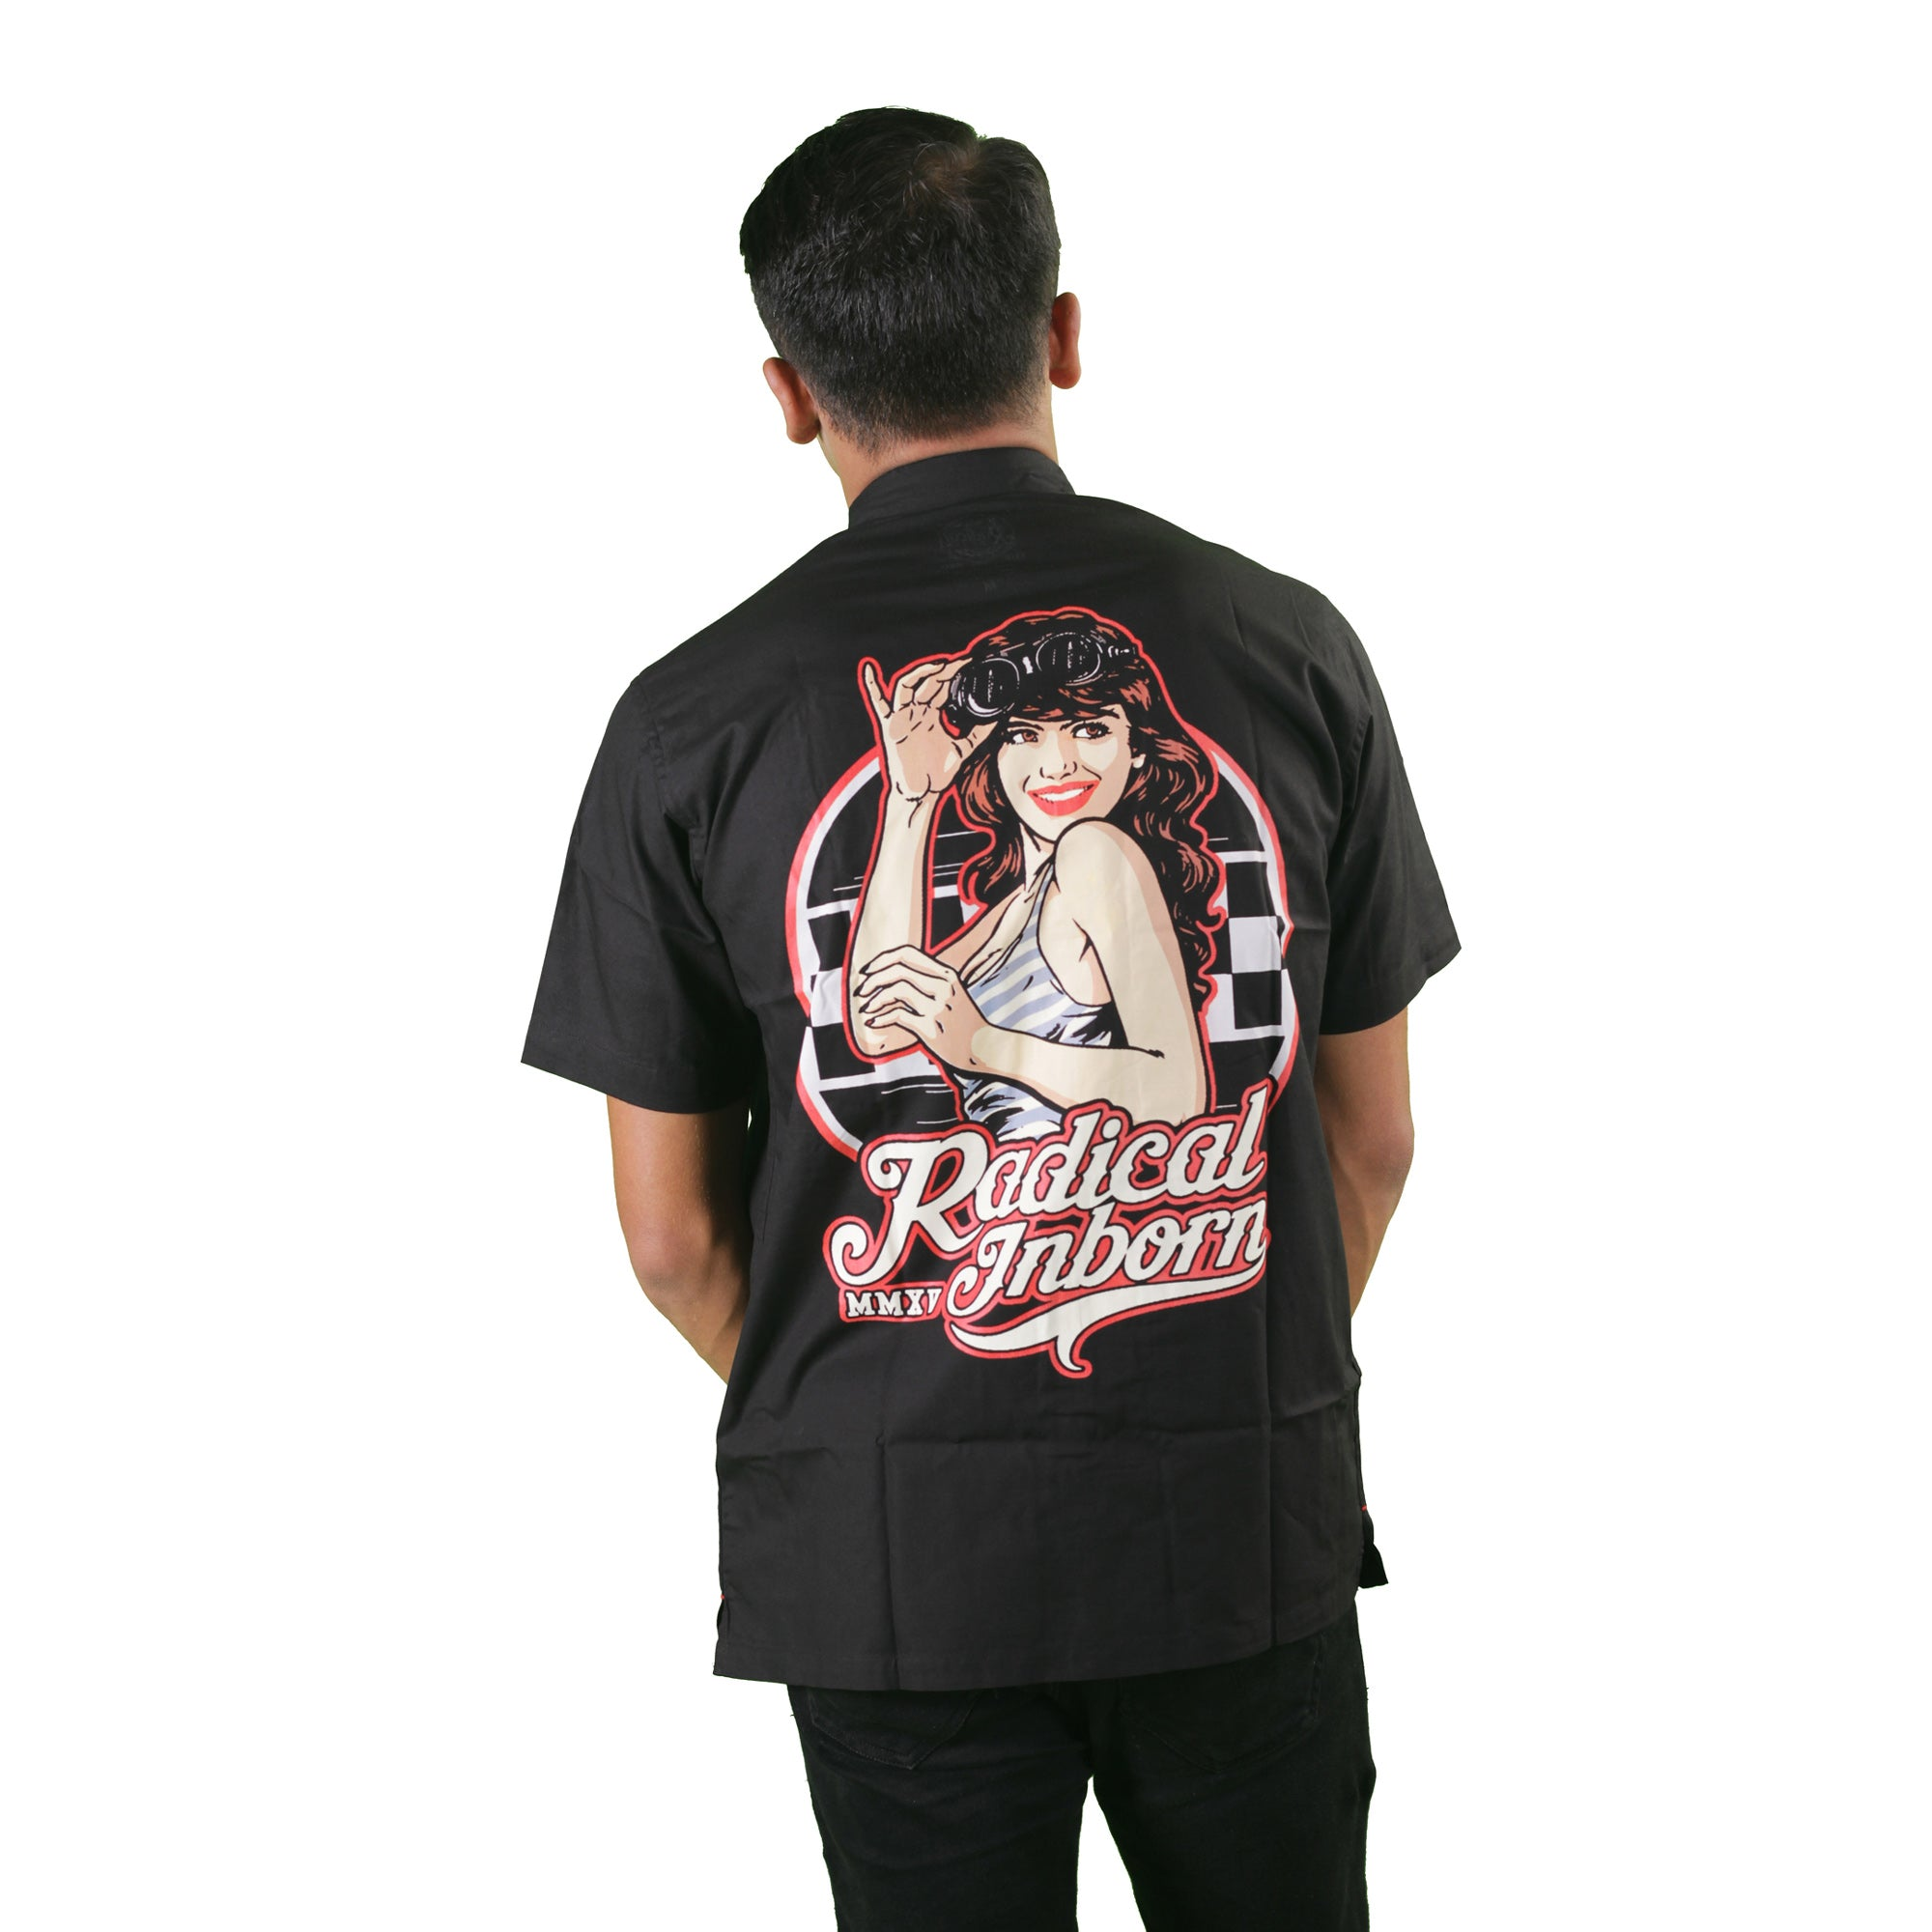 Vintage Girl Mechanic Shirt